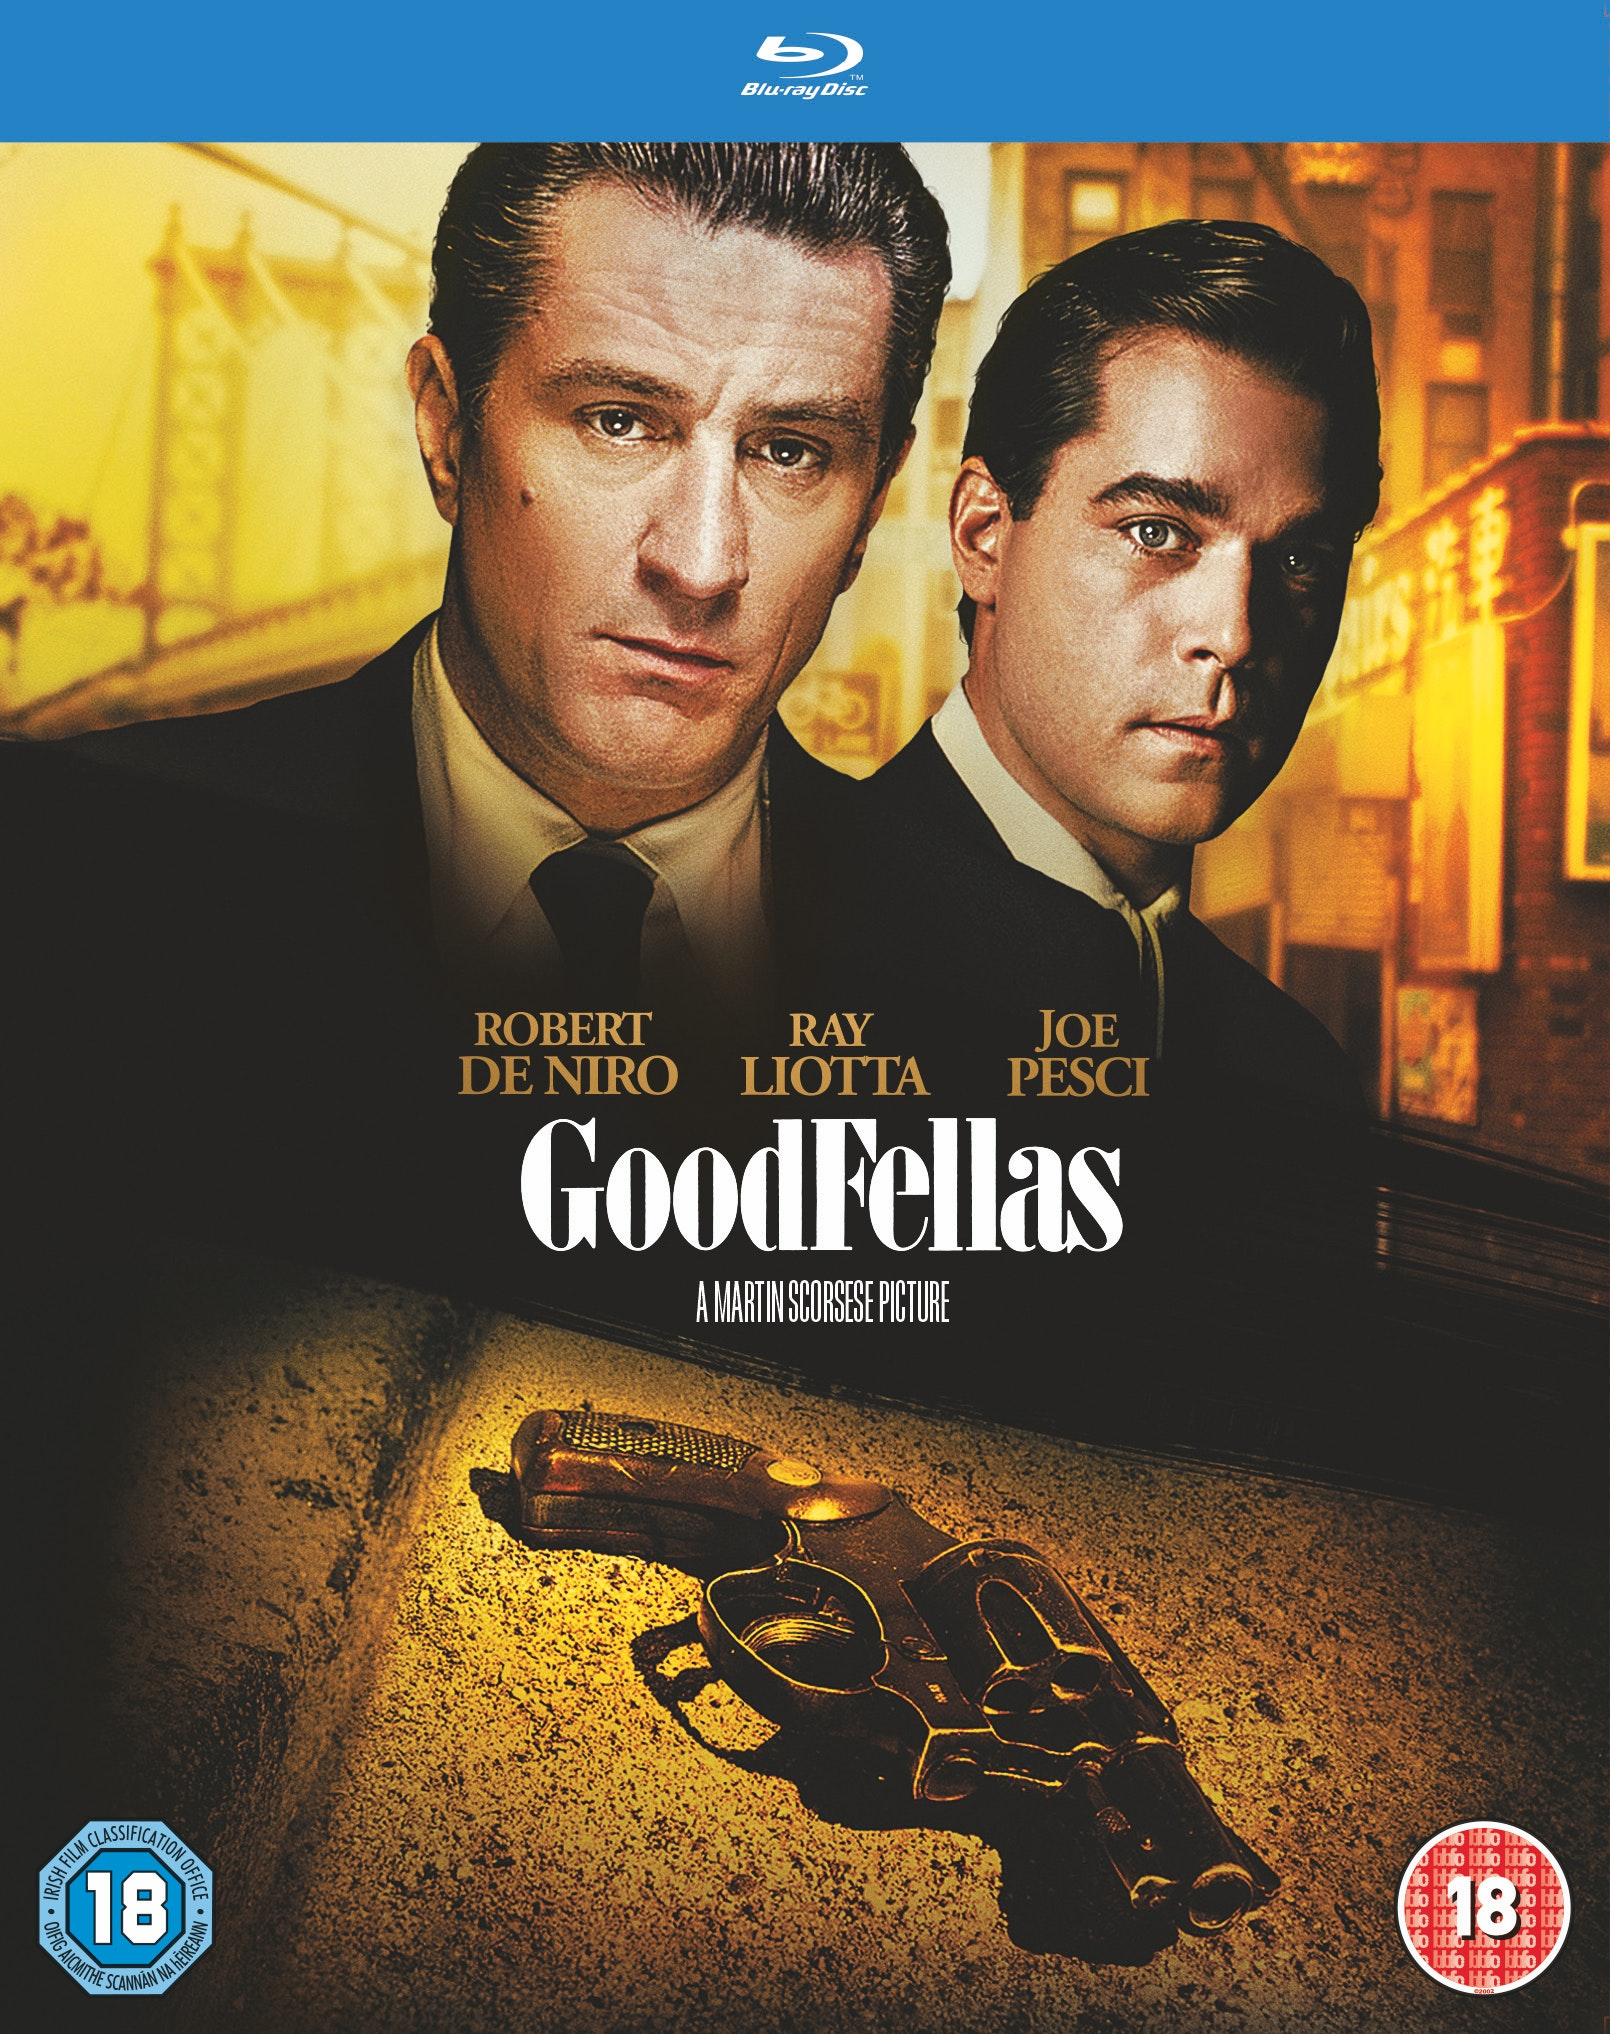 Goodfellas Blu-ray sweepstakes